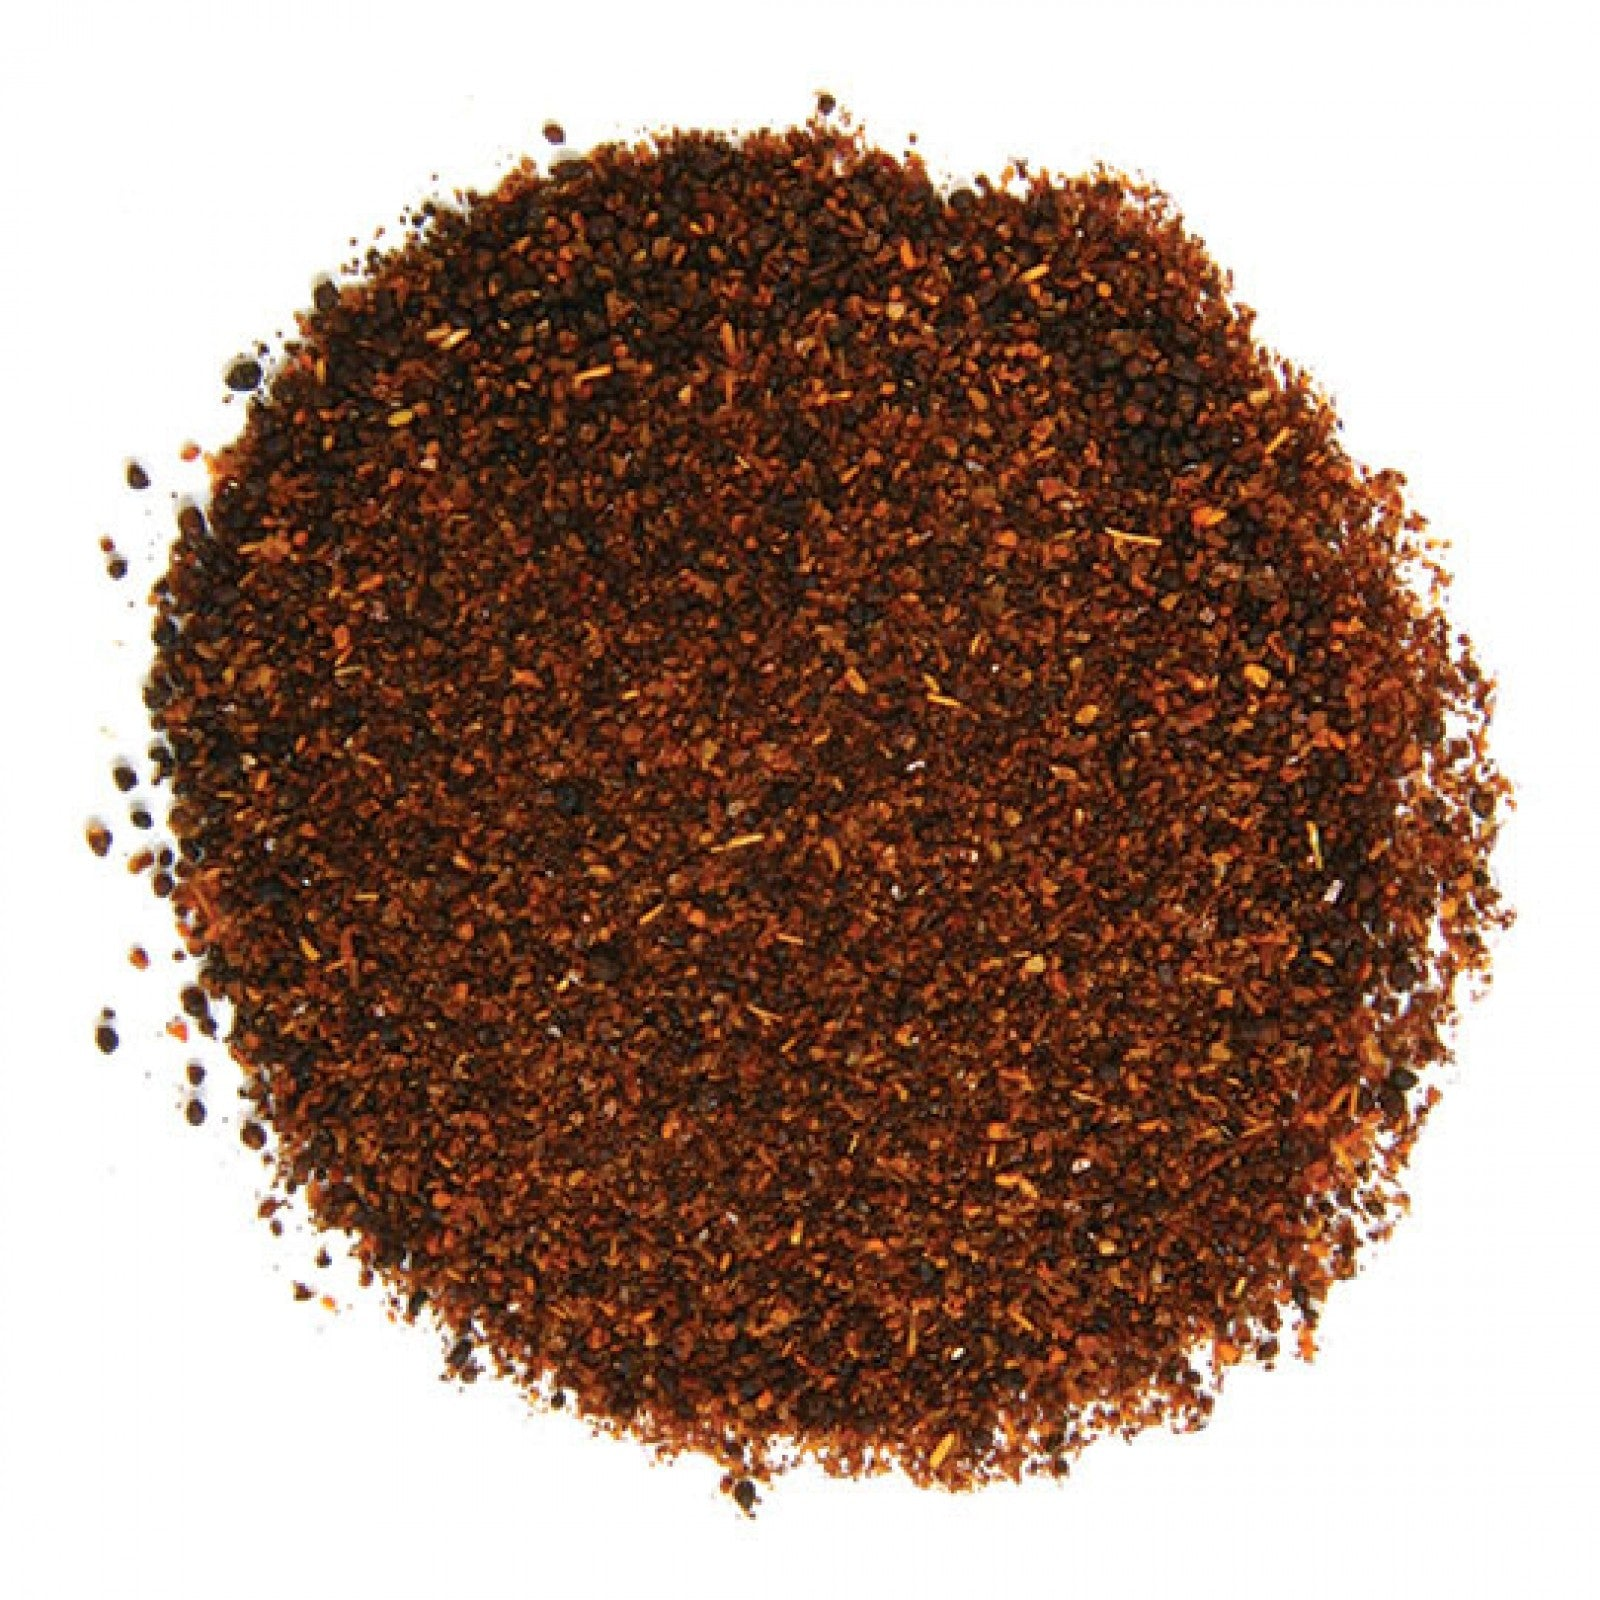 Frontier Organic Chili Powder, 1 lb